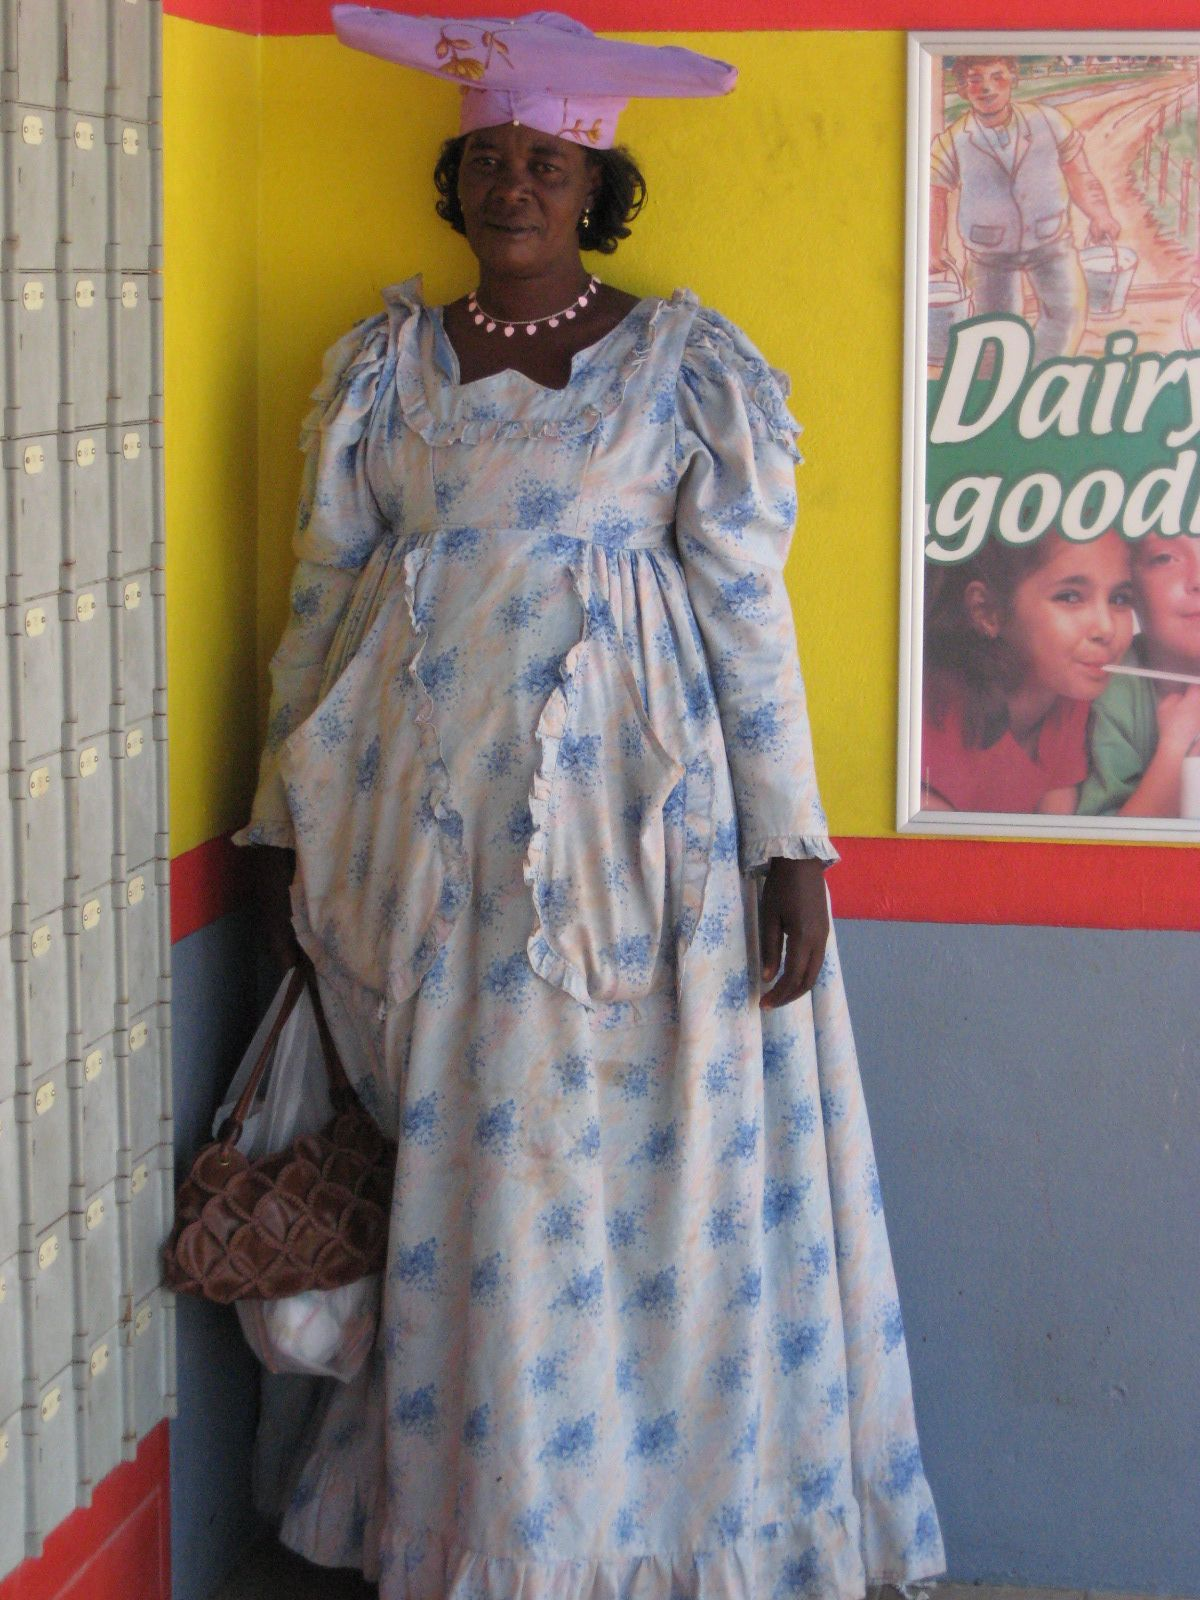 Herero lady - I talk about the Herero in the book